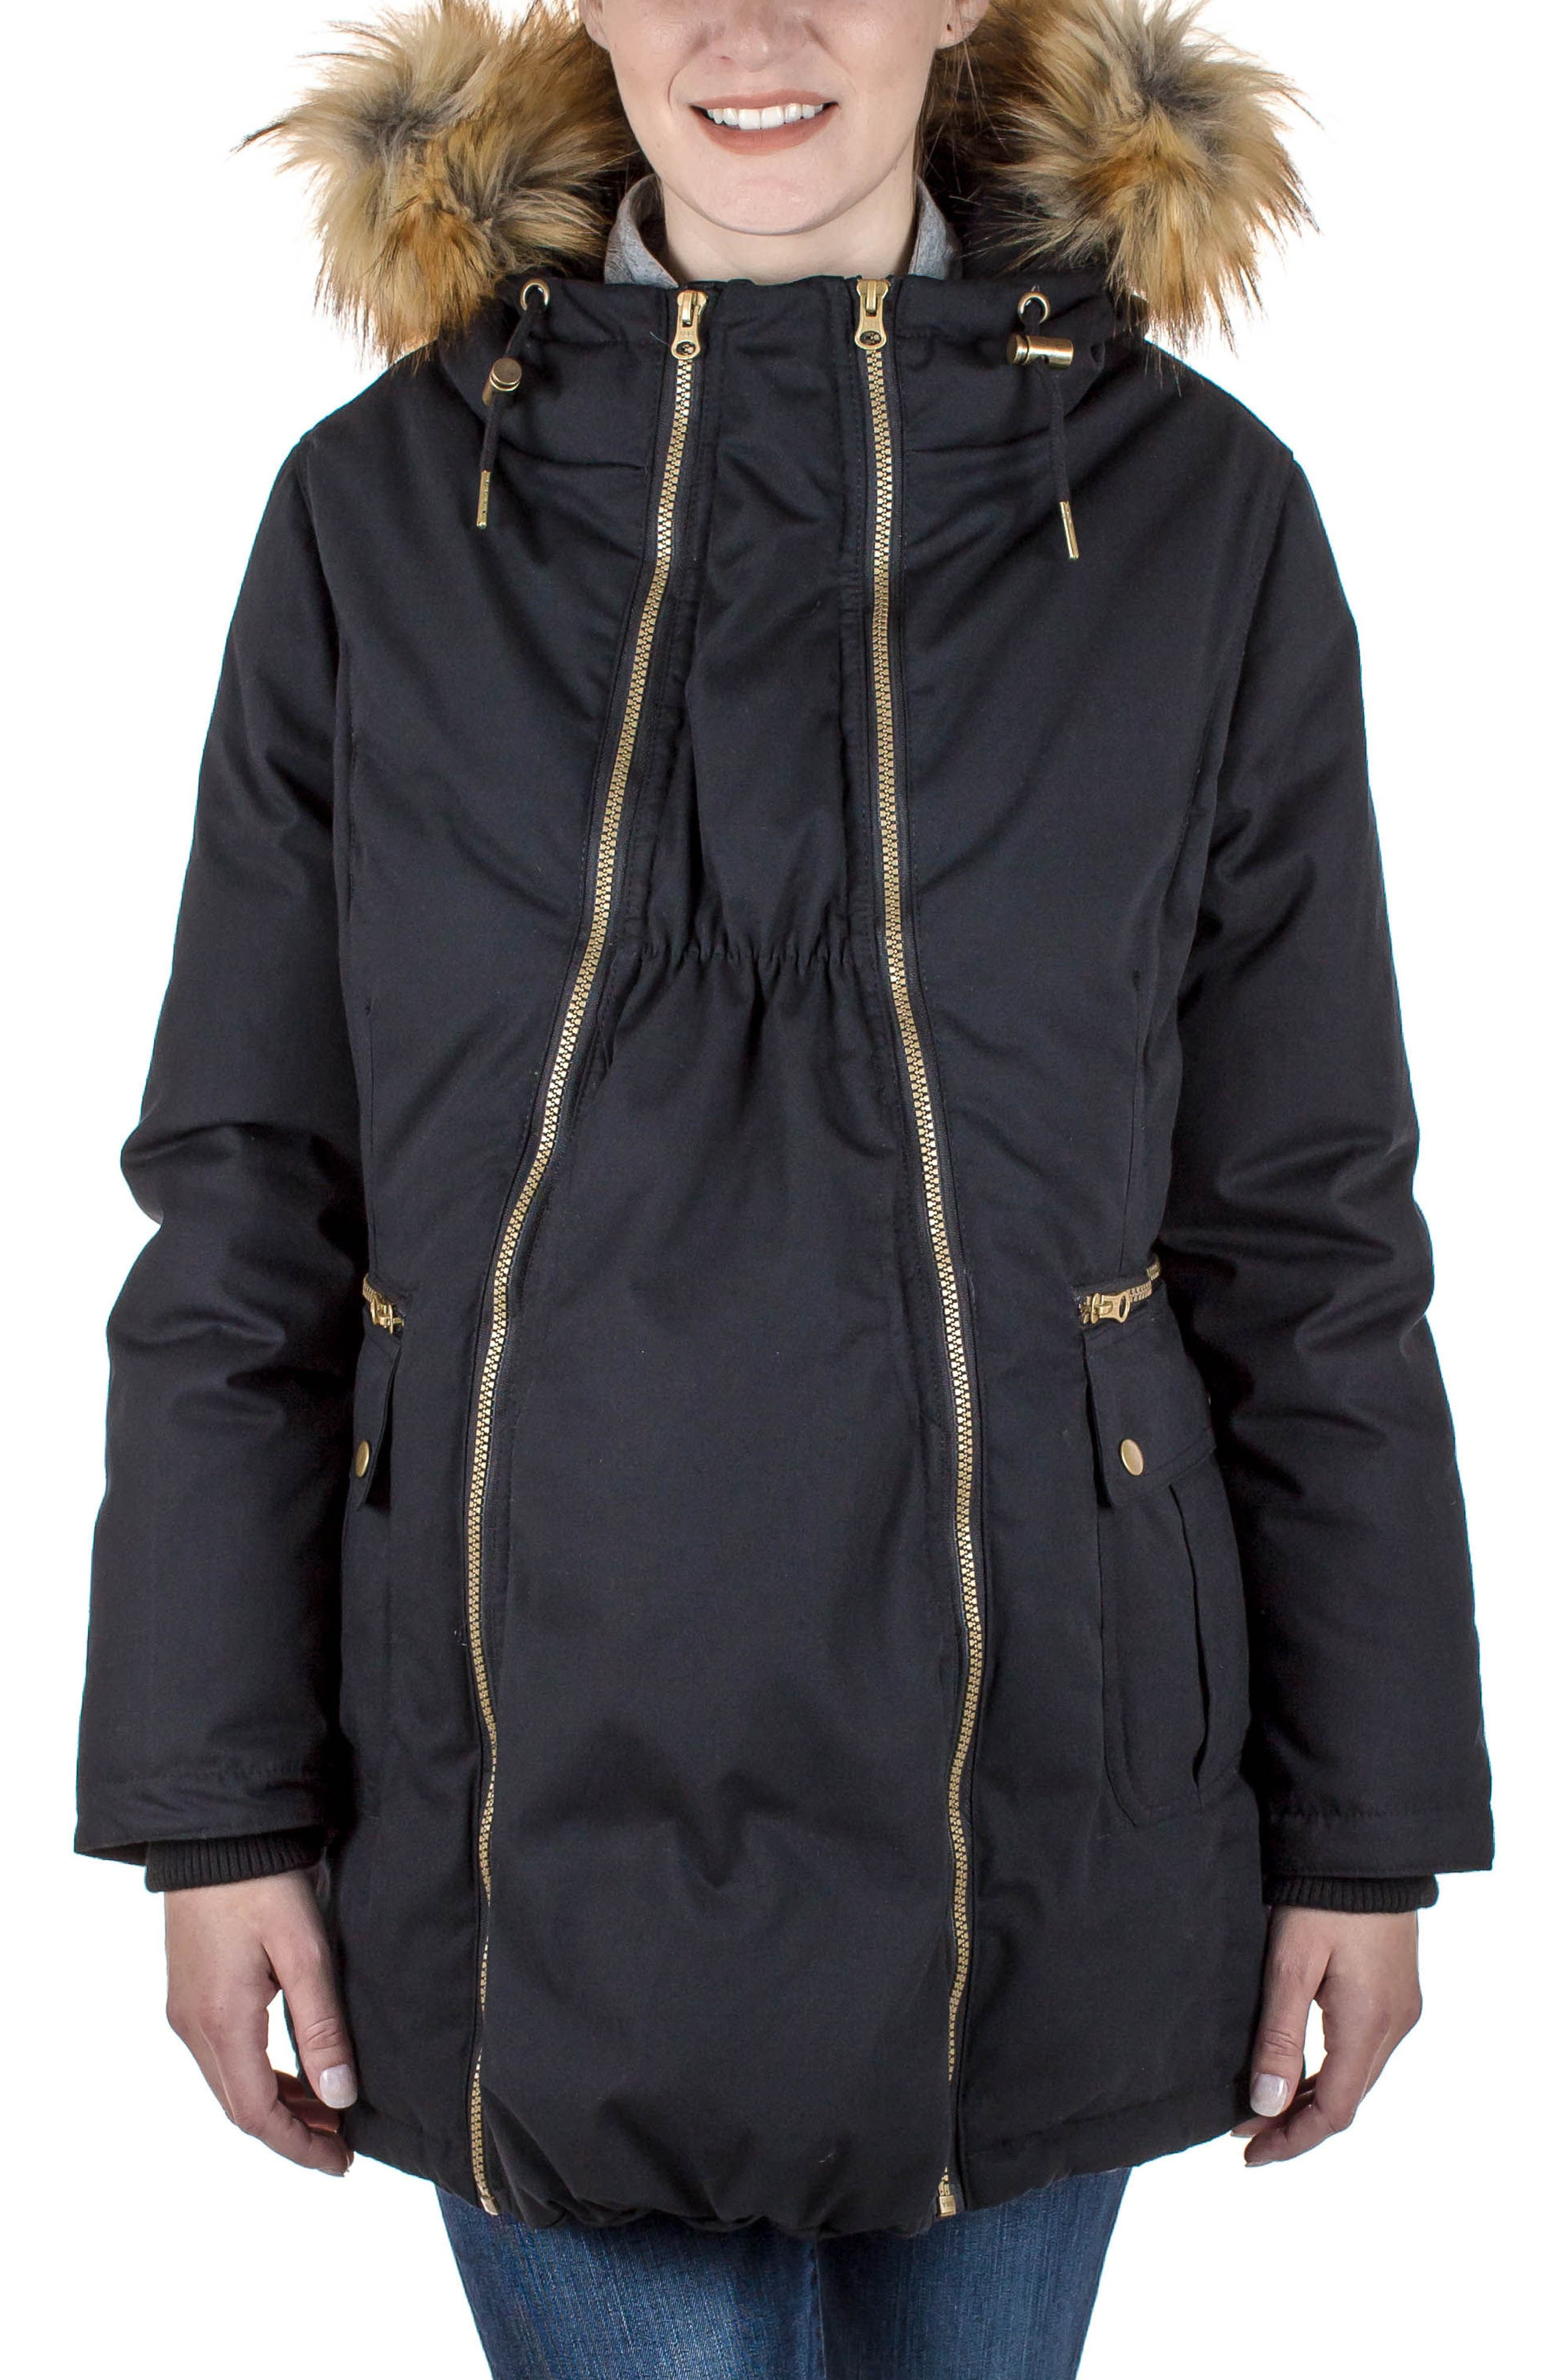 Alternate Image 1 Selected - Modern Eternity Convertible Down Maternity Jacket